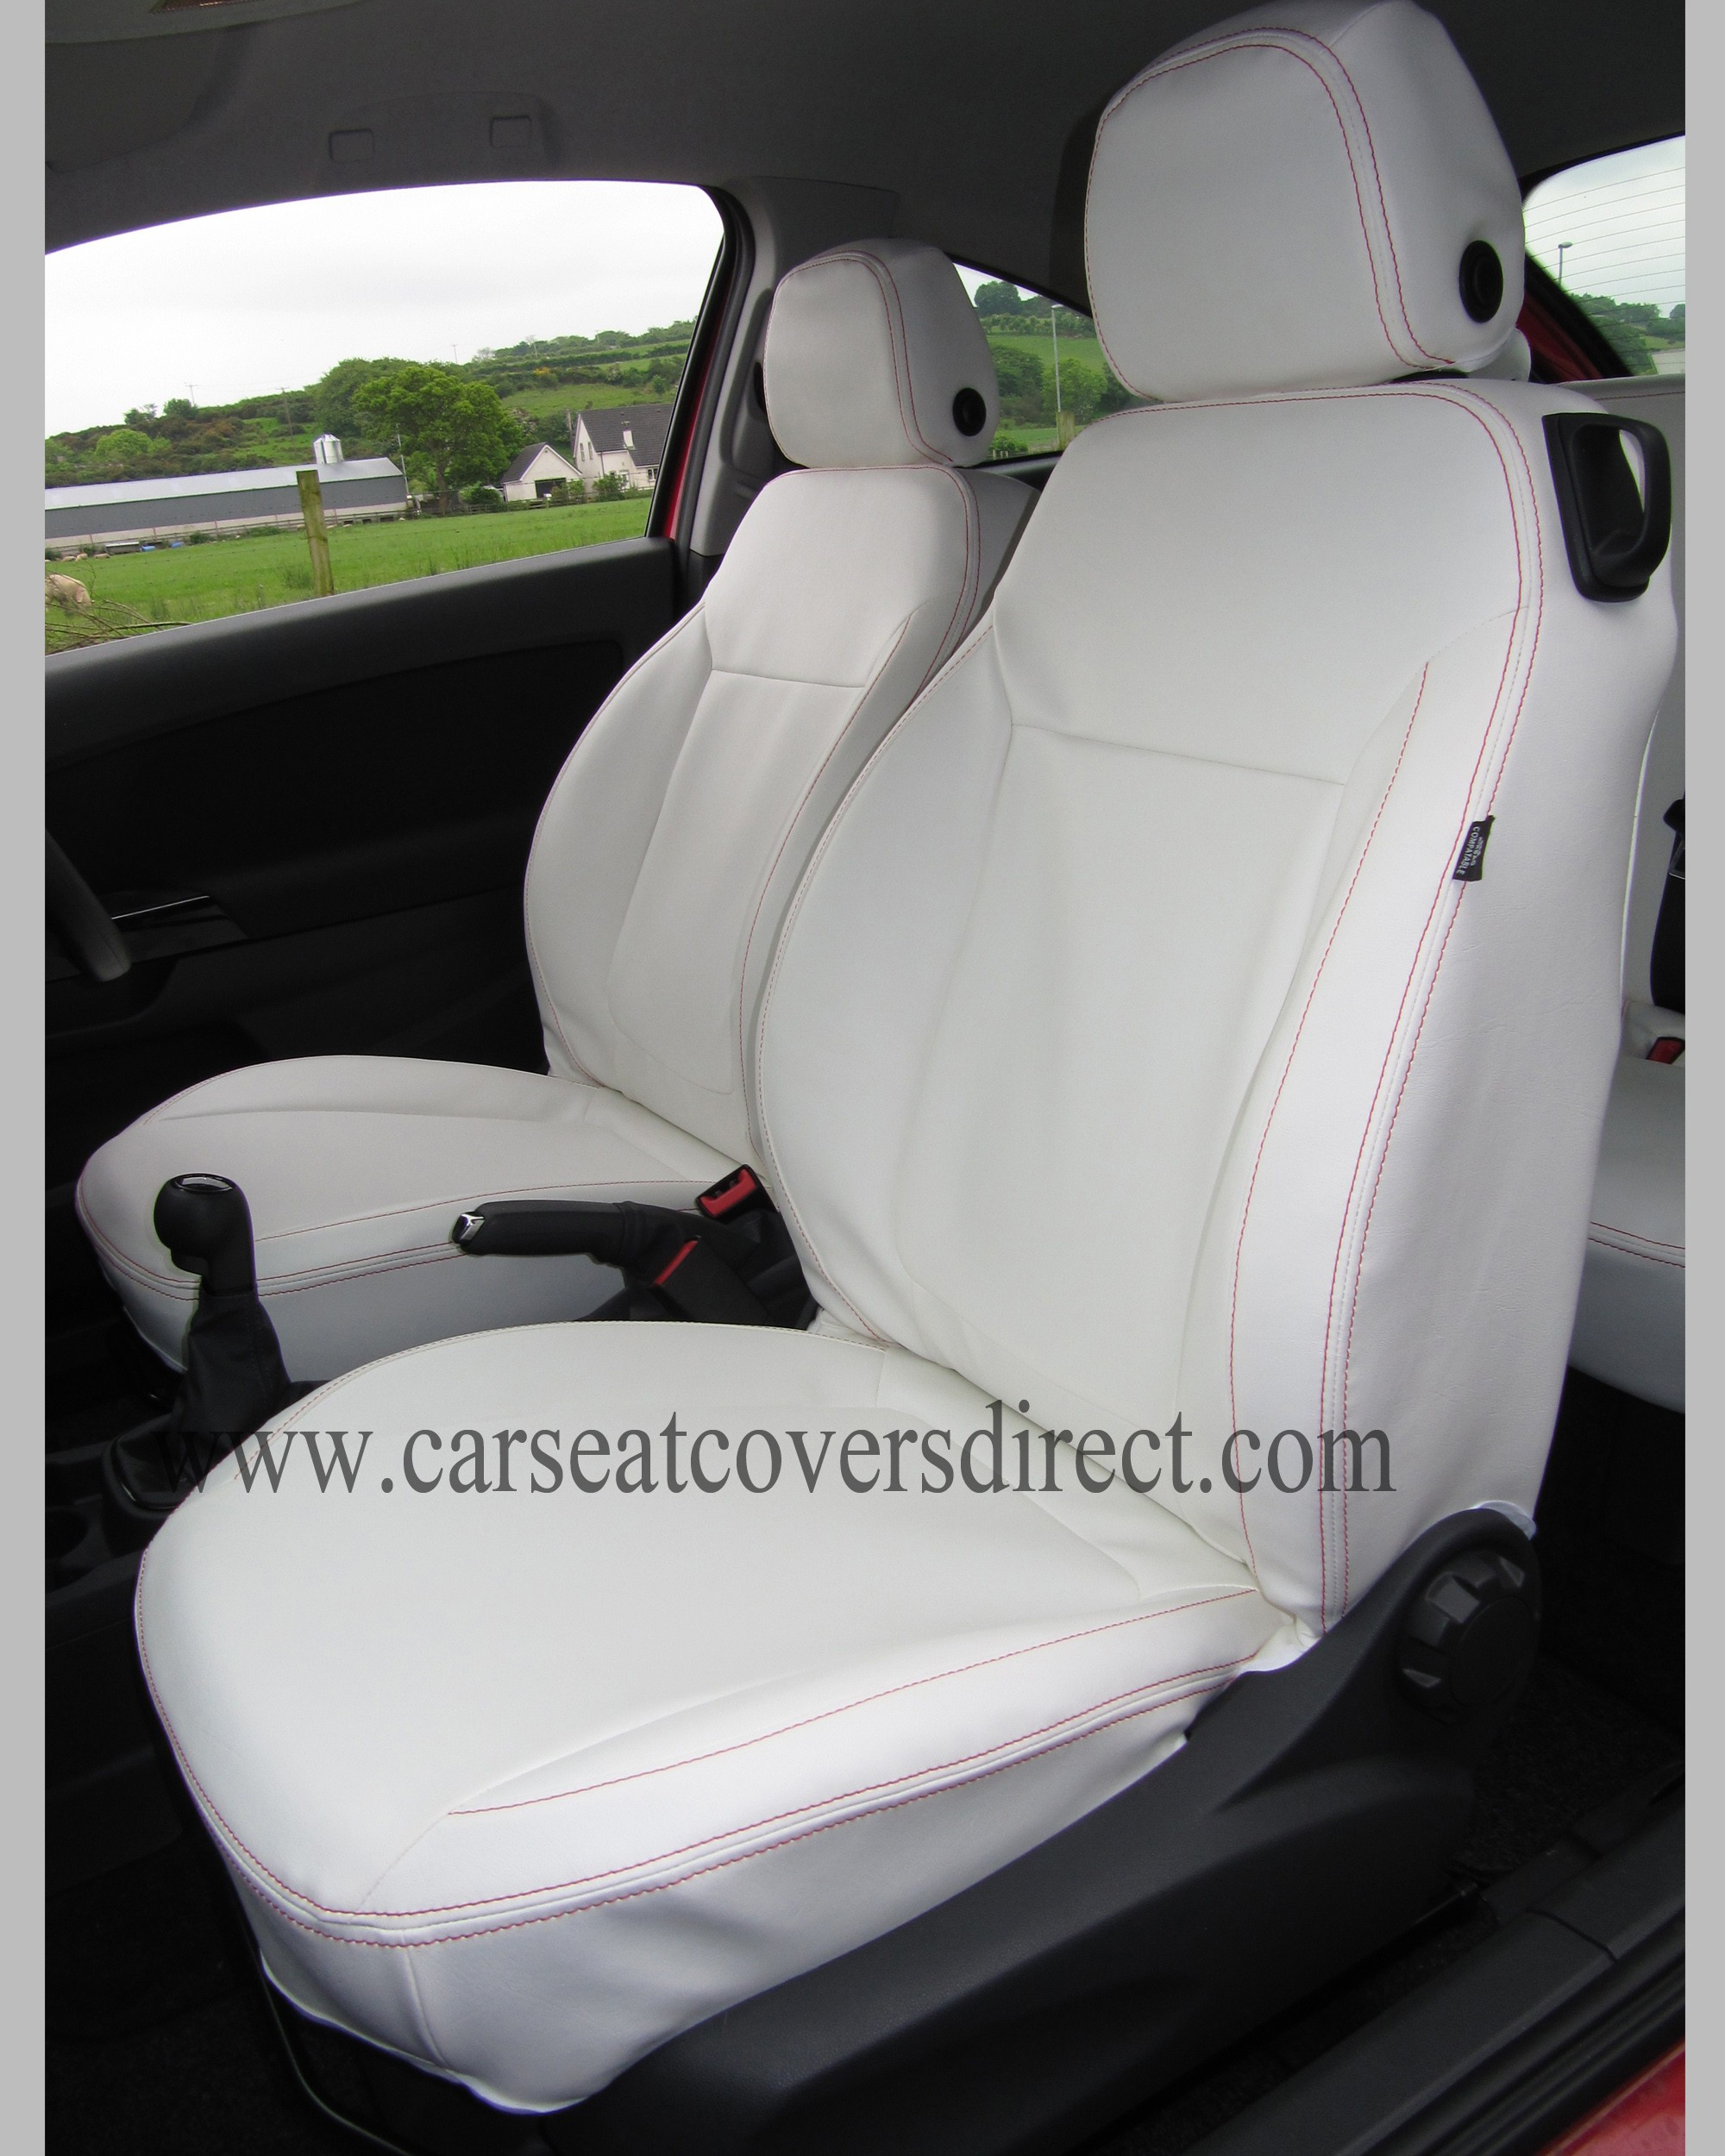 Opel Corsa D (2006 - 2014) Seat Covers